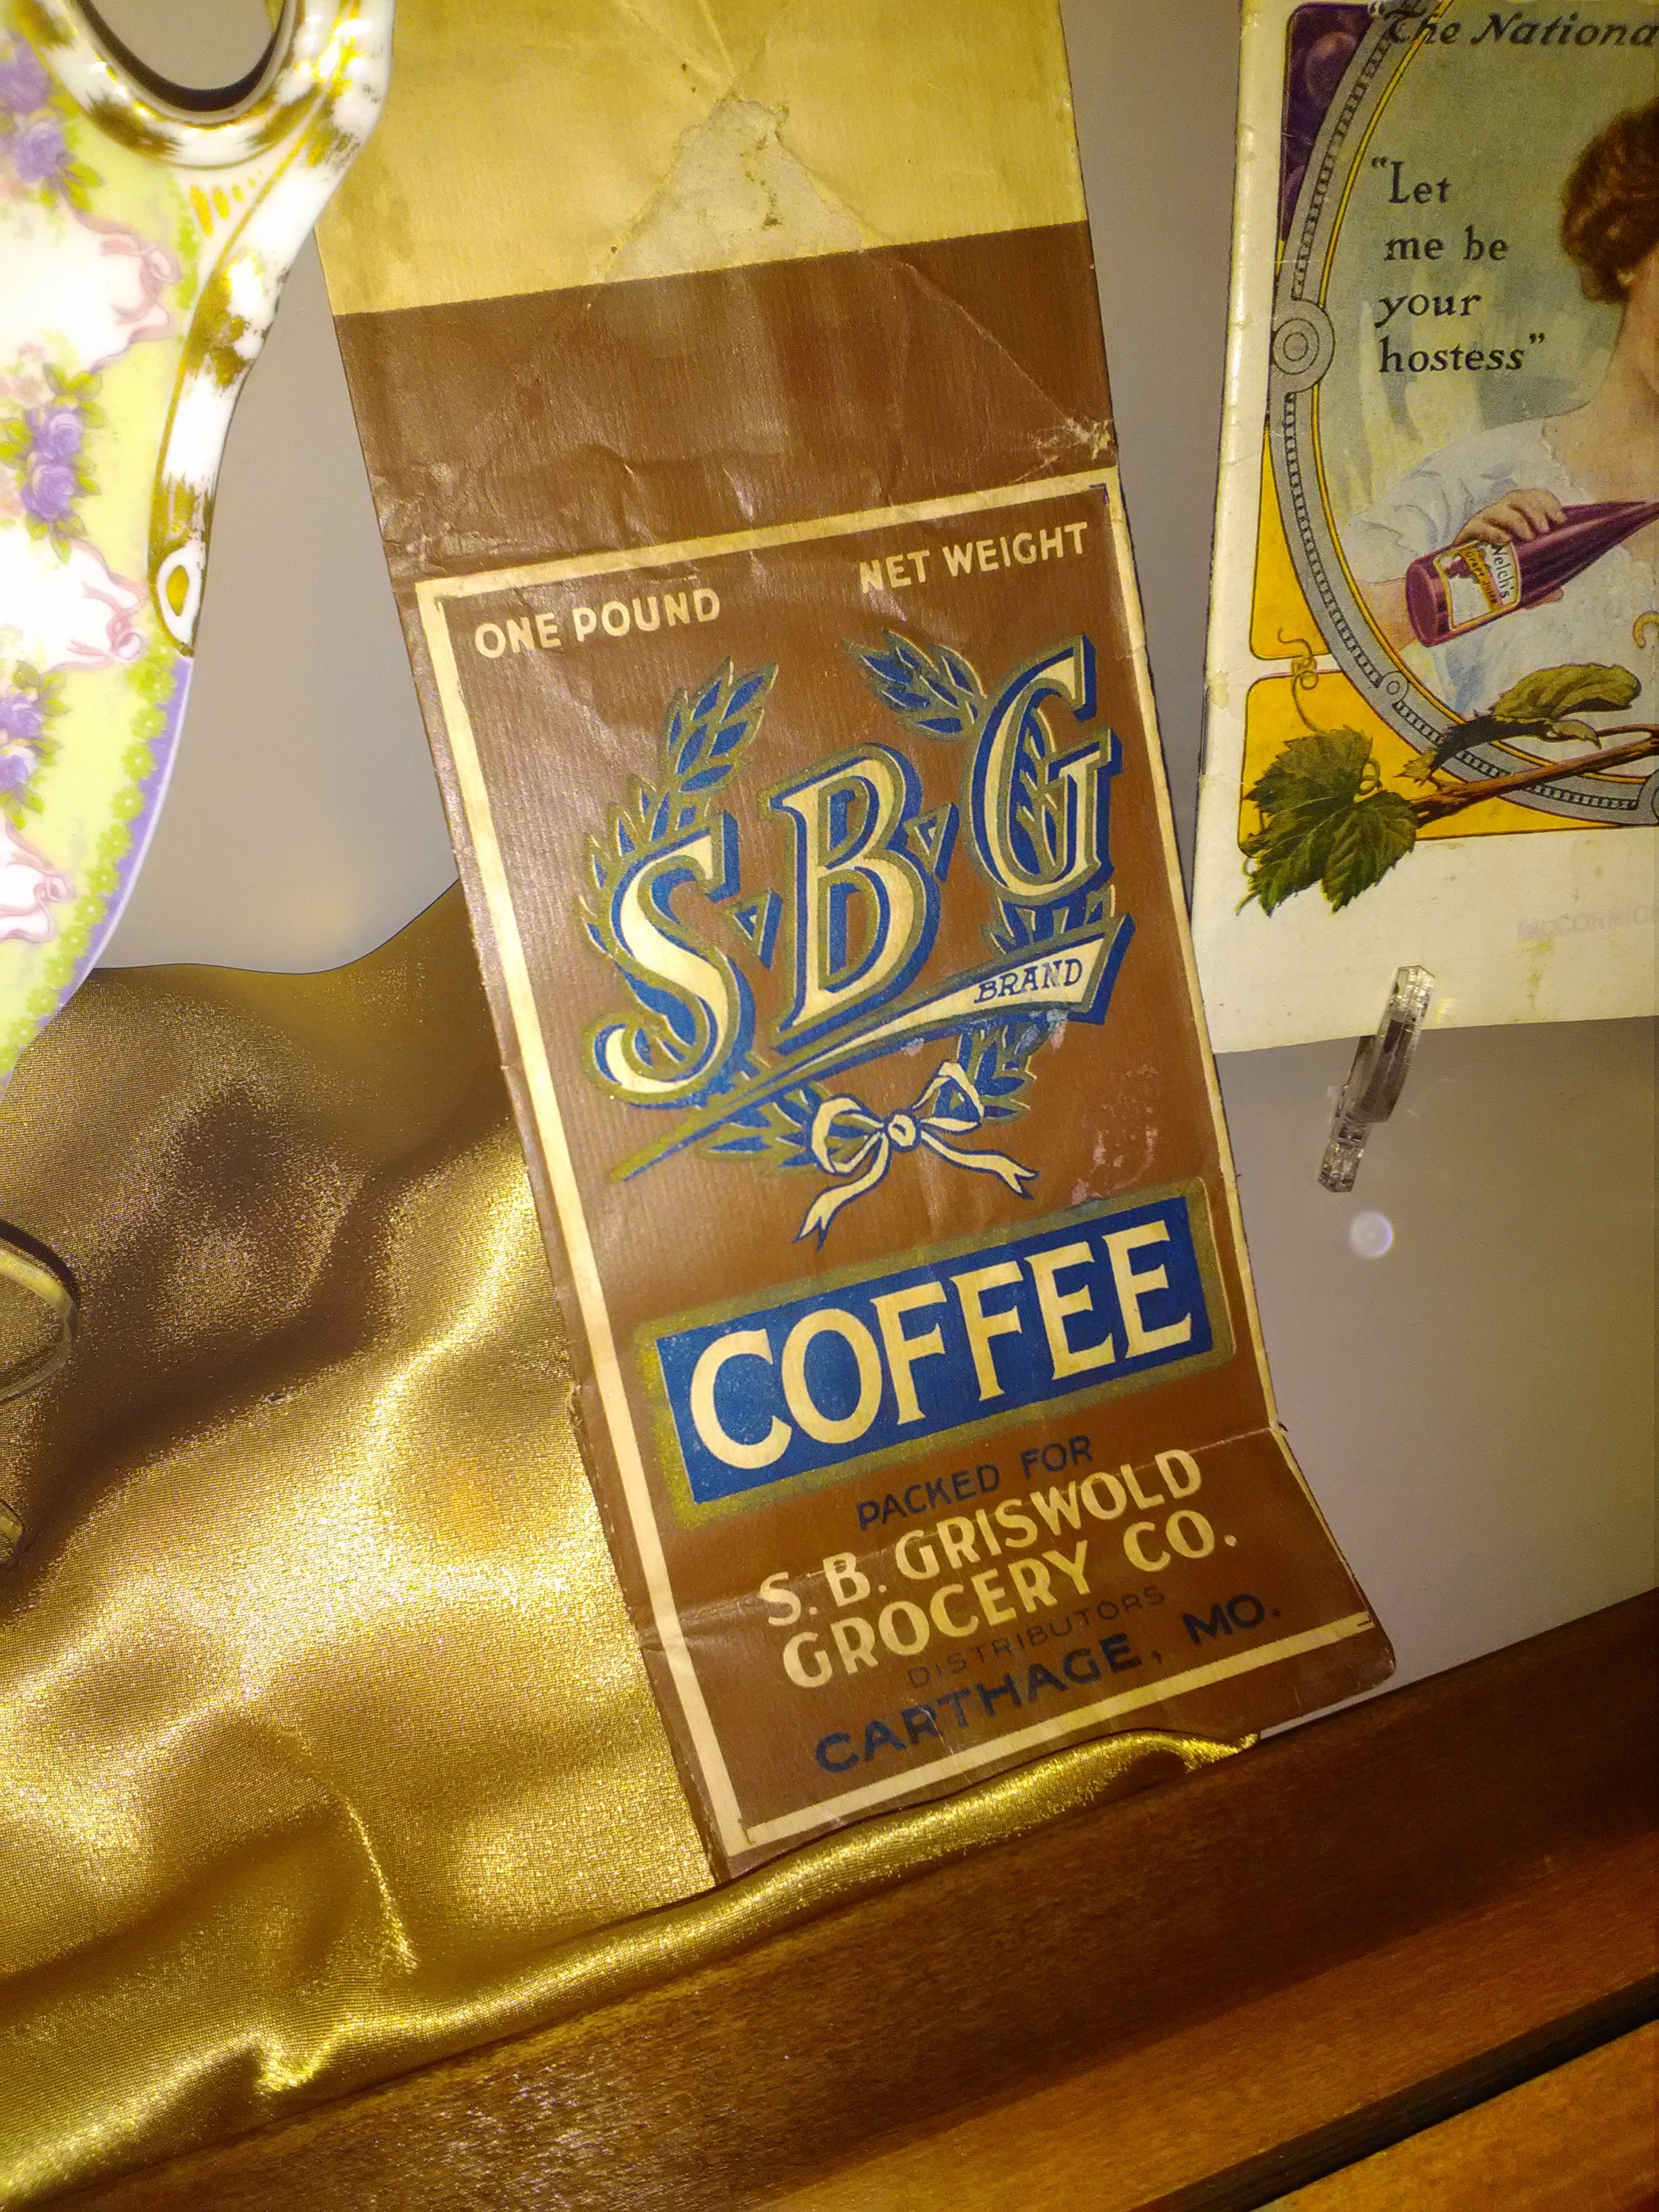 Griswold Grocery coffee bag, 1910, displayed in 175th Anniversary of Carthage Exhibit at  Powers Museum in 2017.